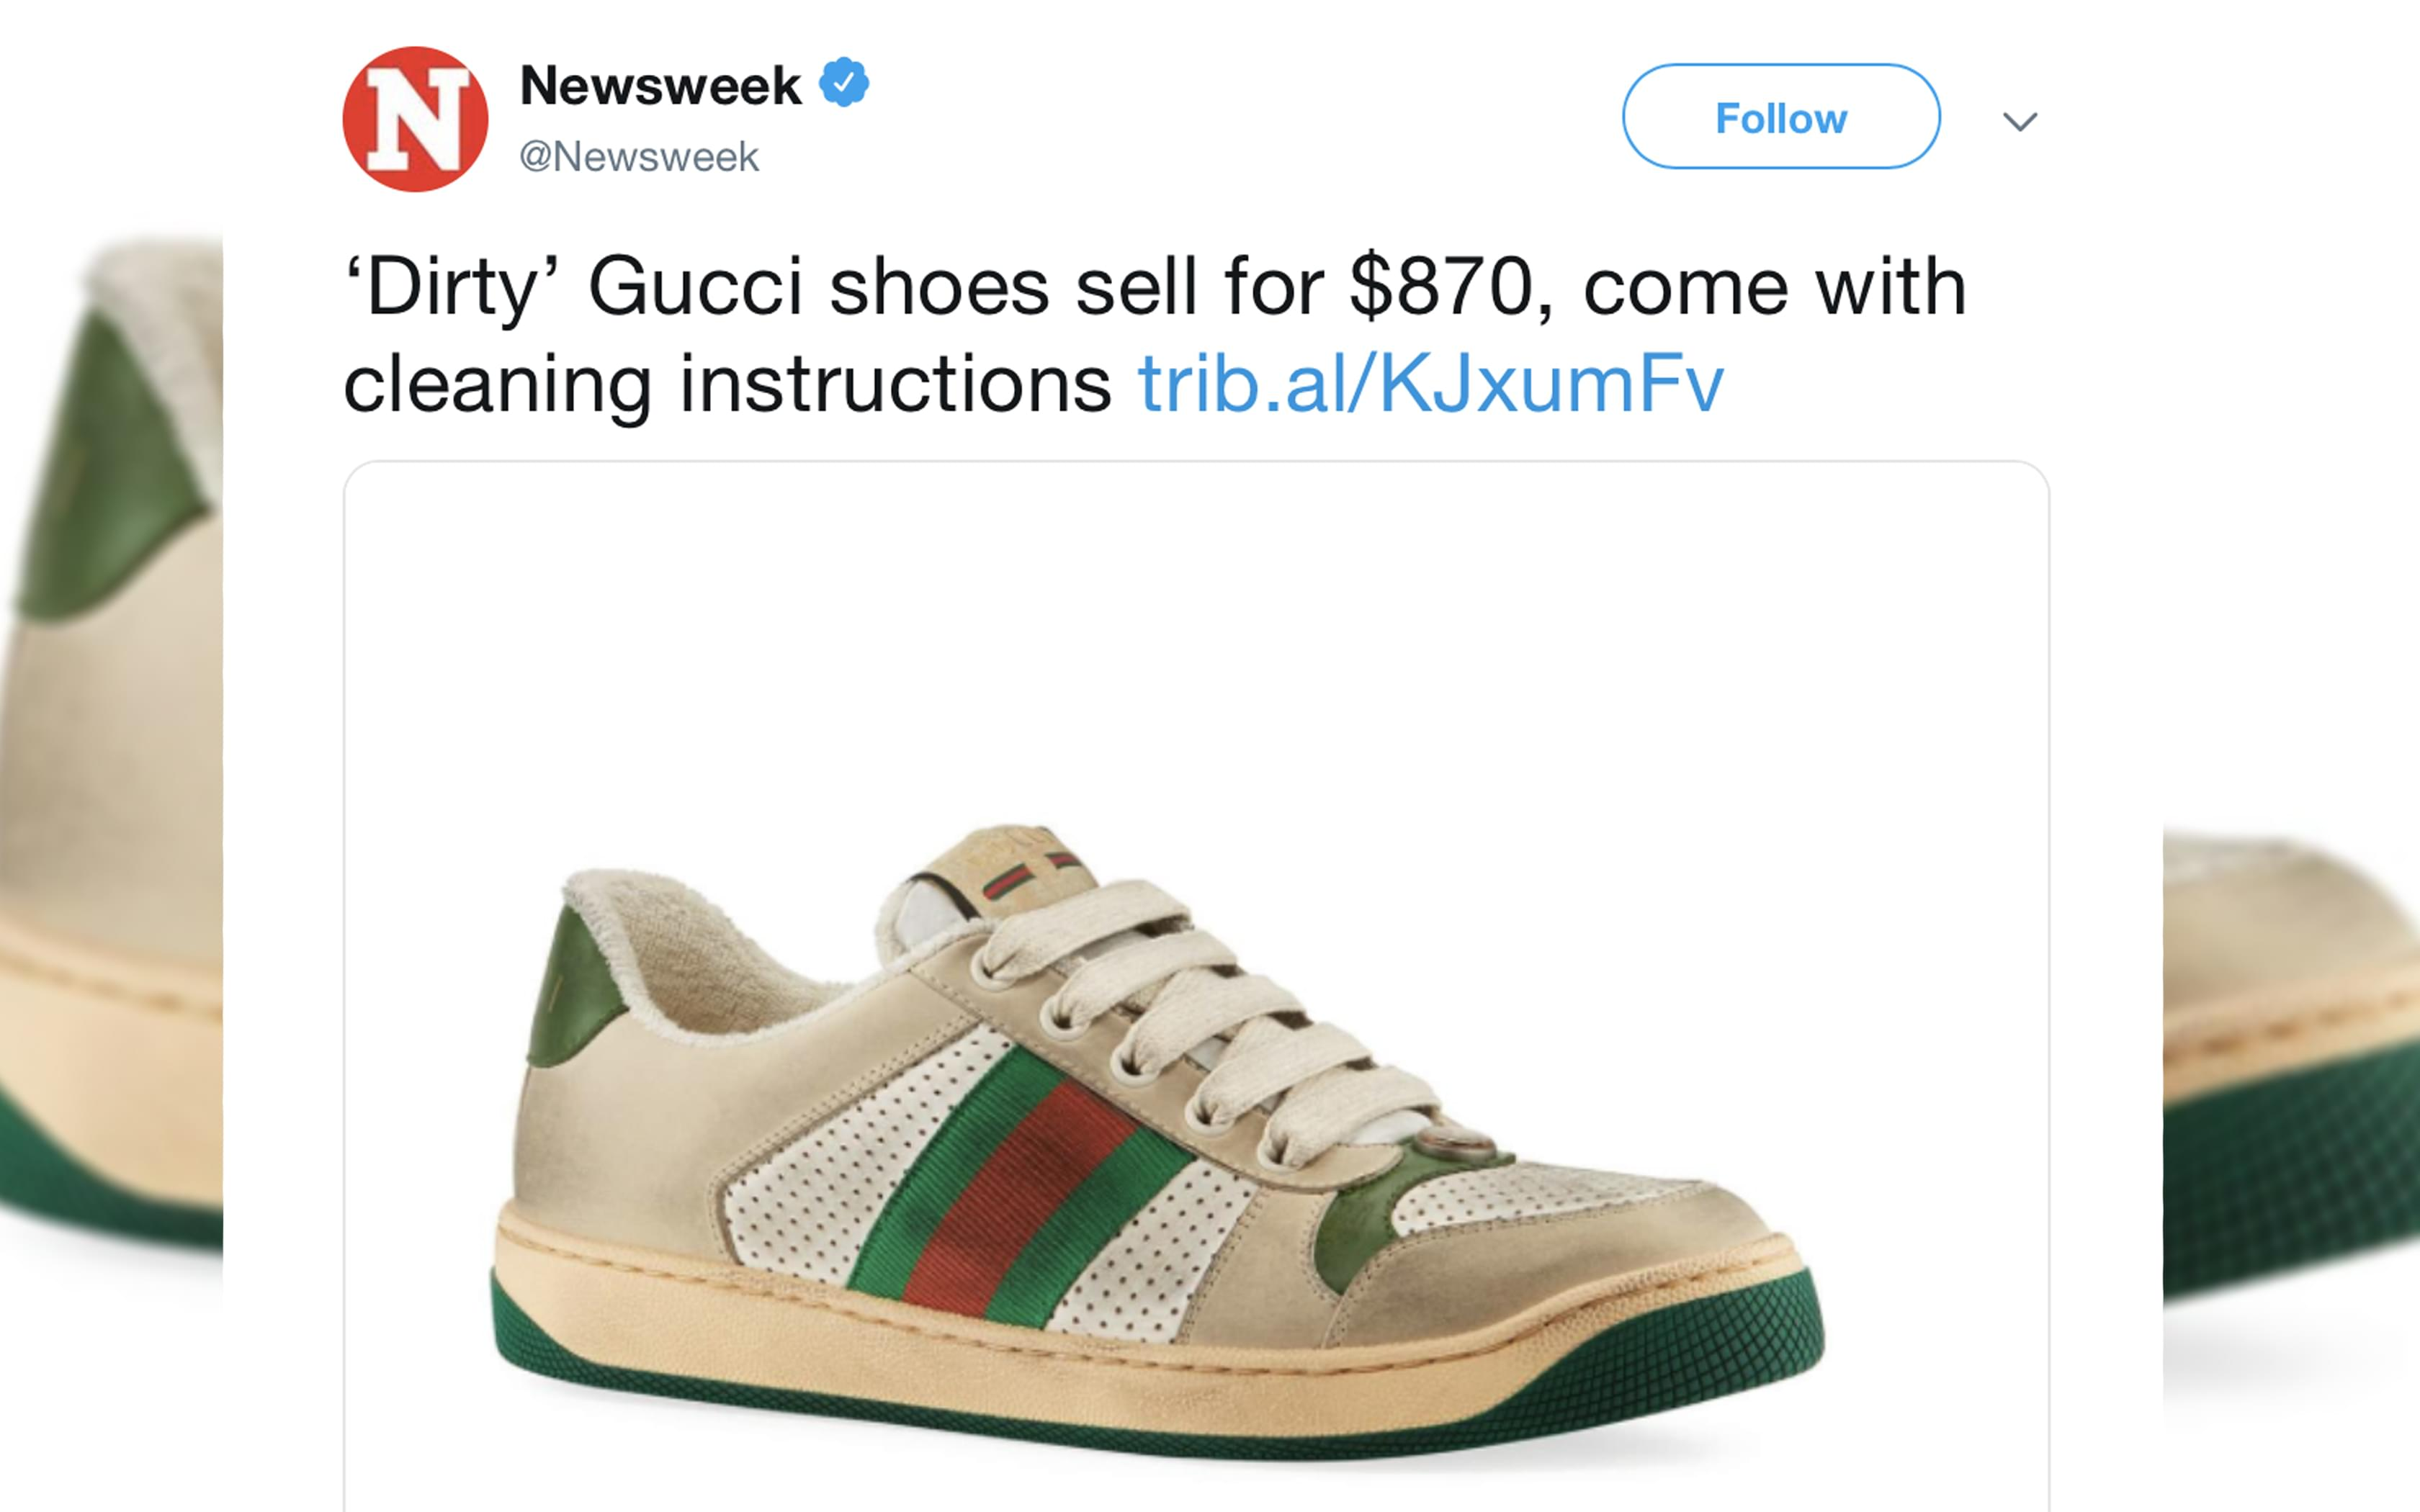 Gucci Is selling $870 sneakers that are designed to look old and dirty